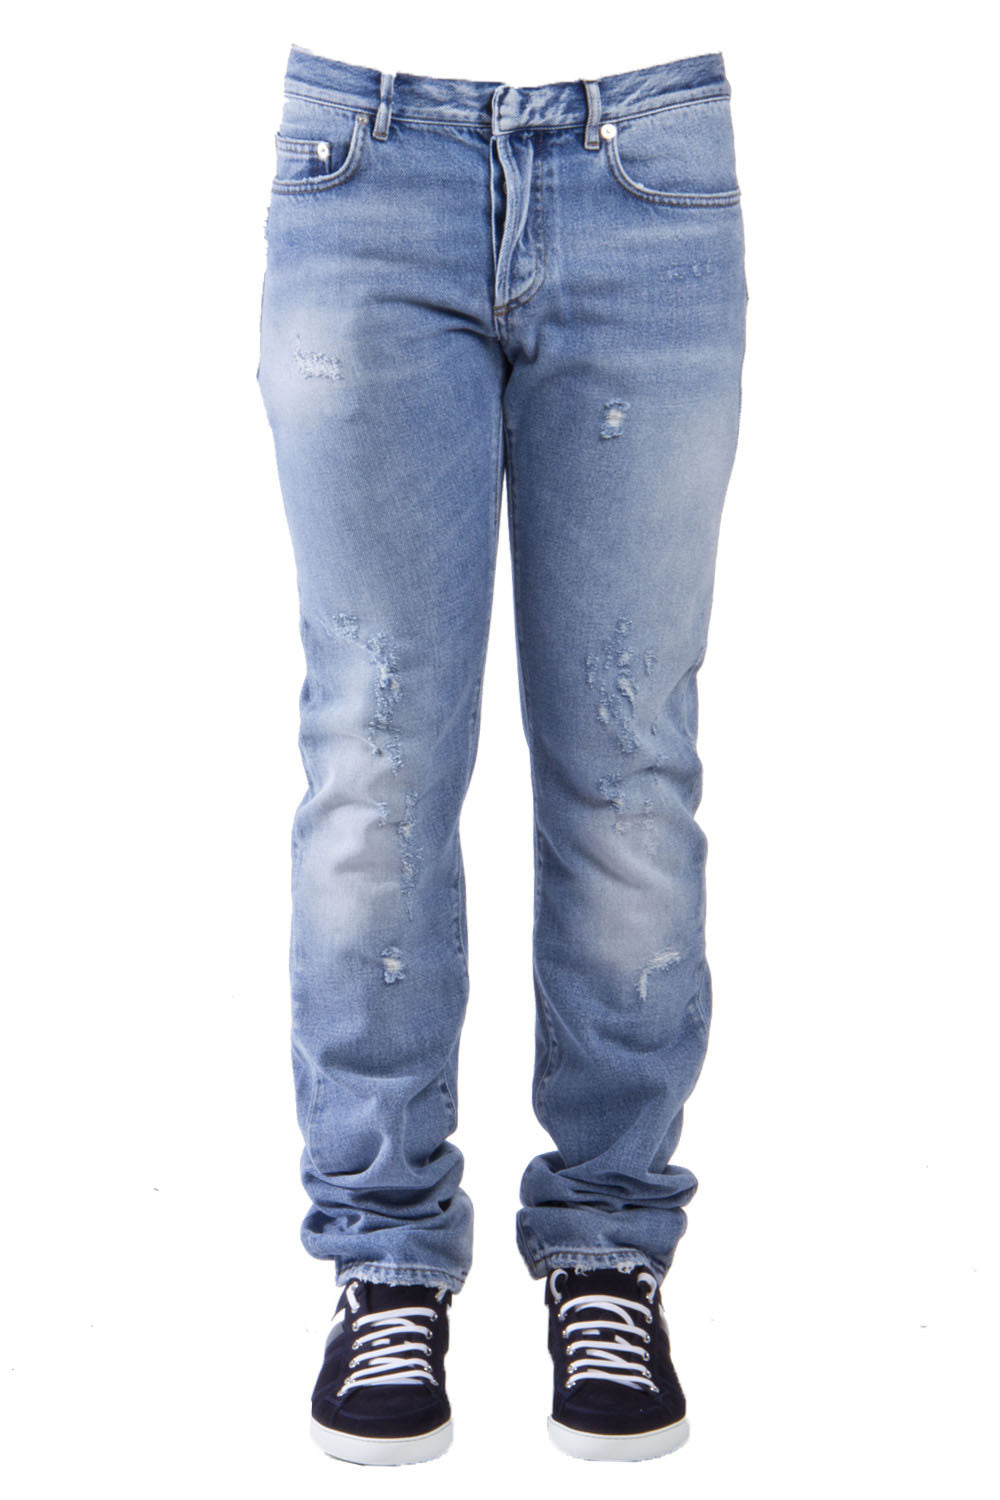 Dior Homme Jeans DIOR HOMME DISTRESSED LOOK JEANS